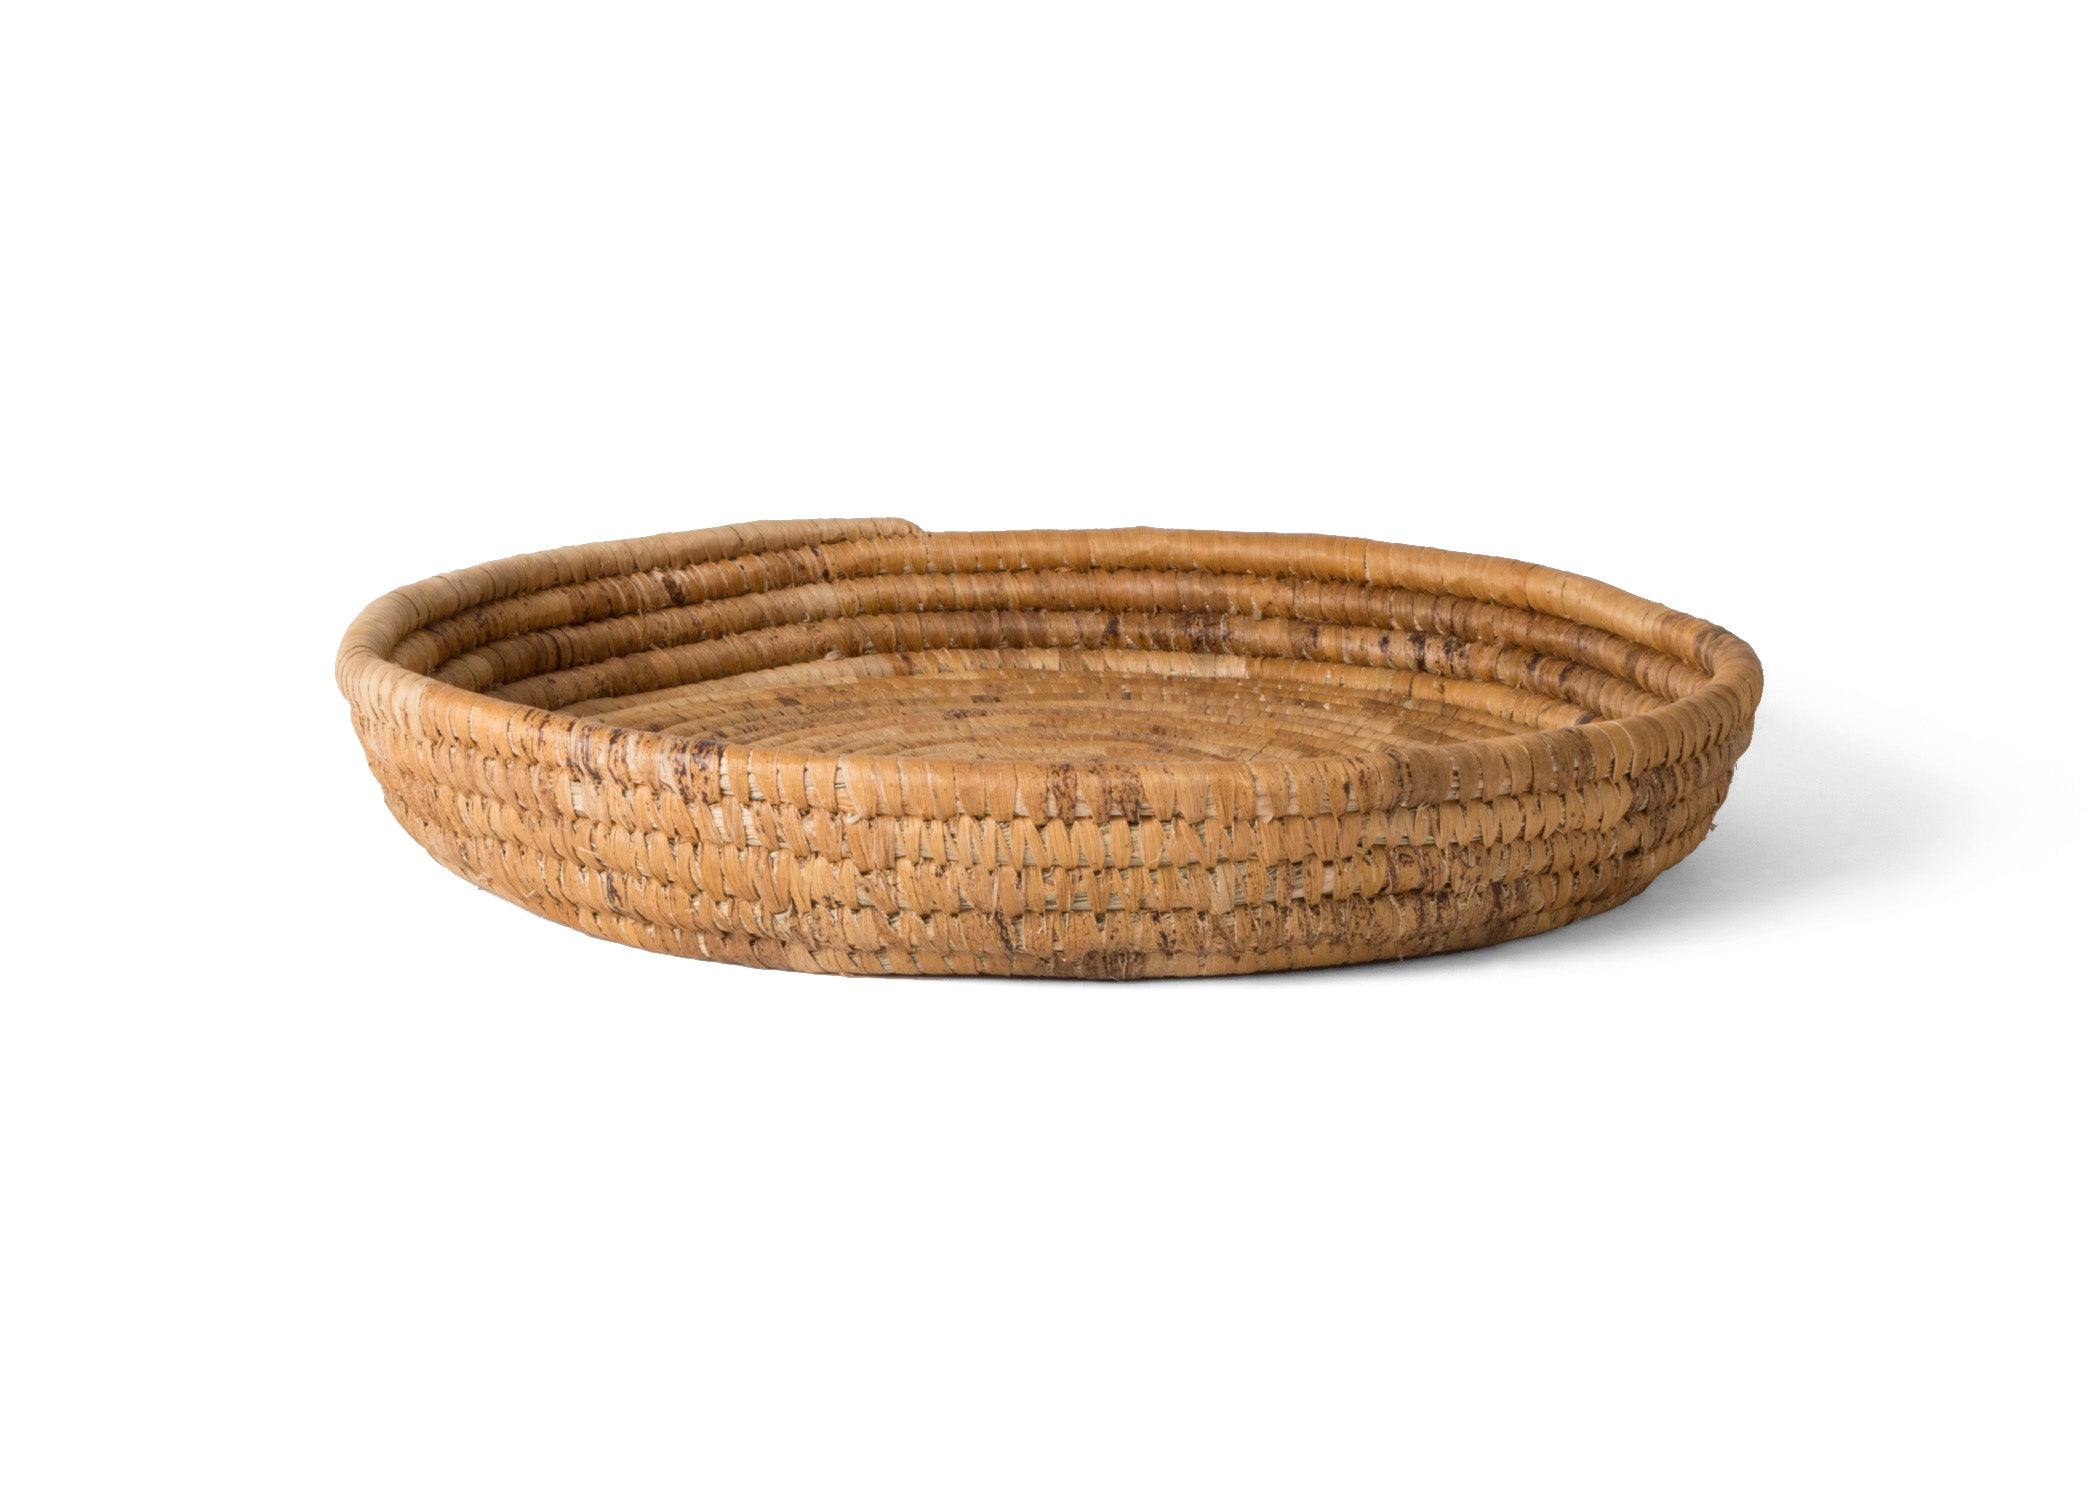 Banana Bark Round Raffia Tray - KAZI - Artisan made high quality home decor and wall art